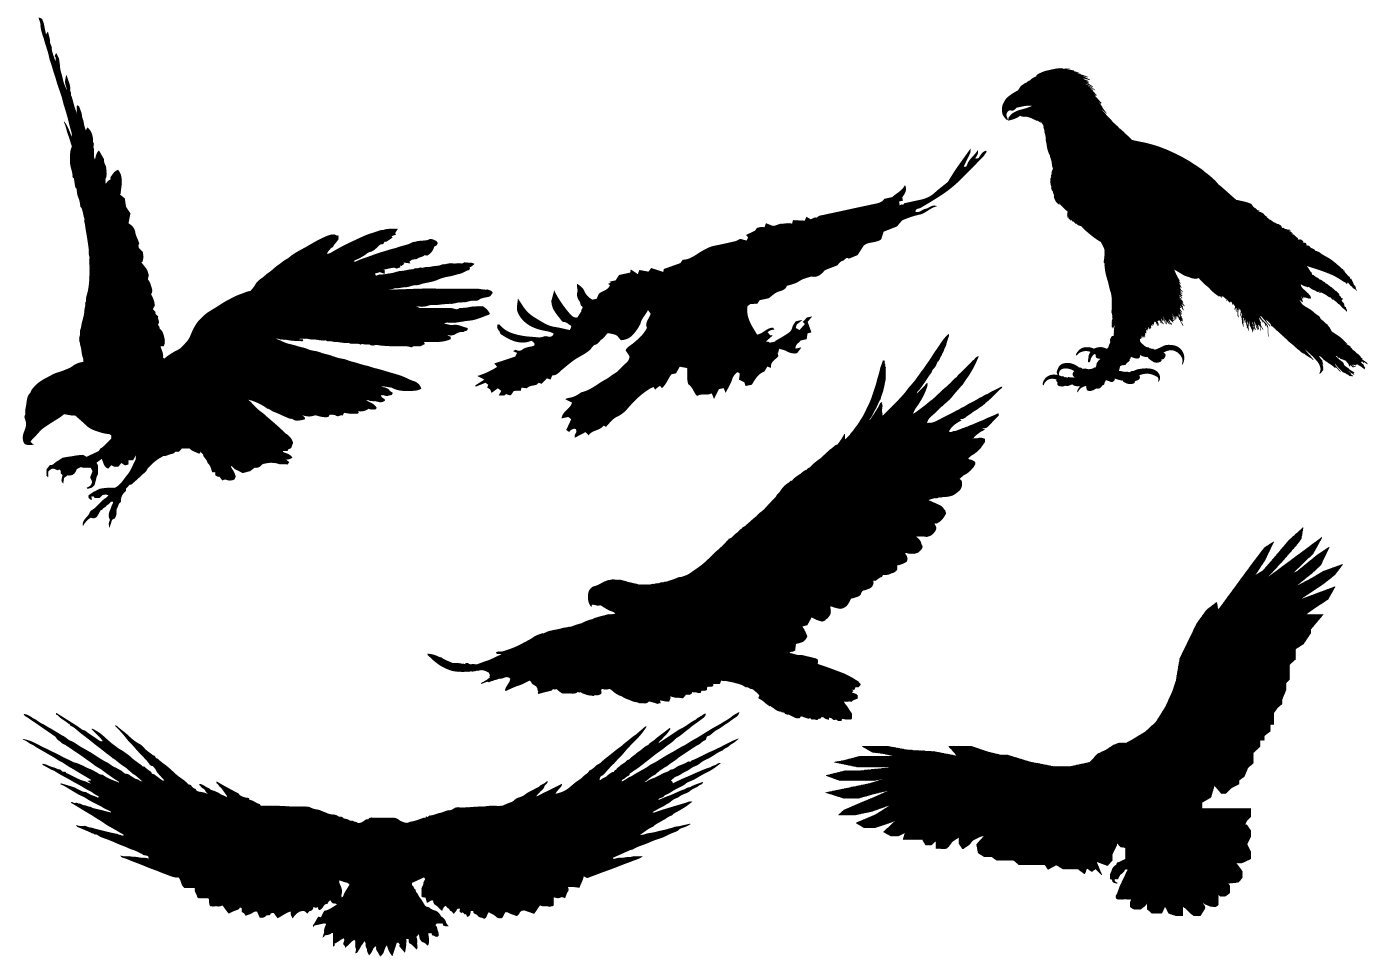 Eagle Silhouette Cliparts | Free download best Eagle